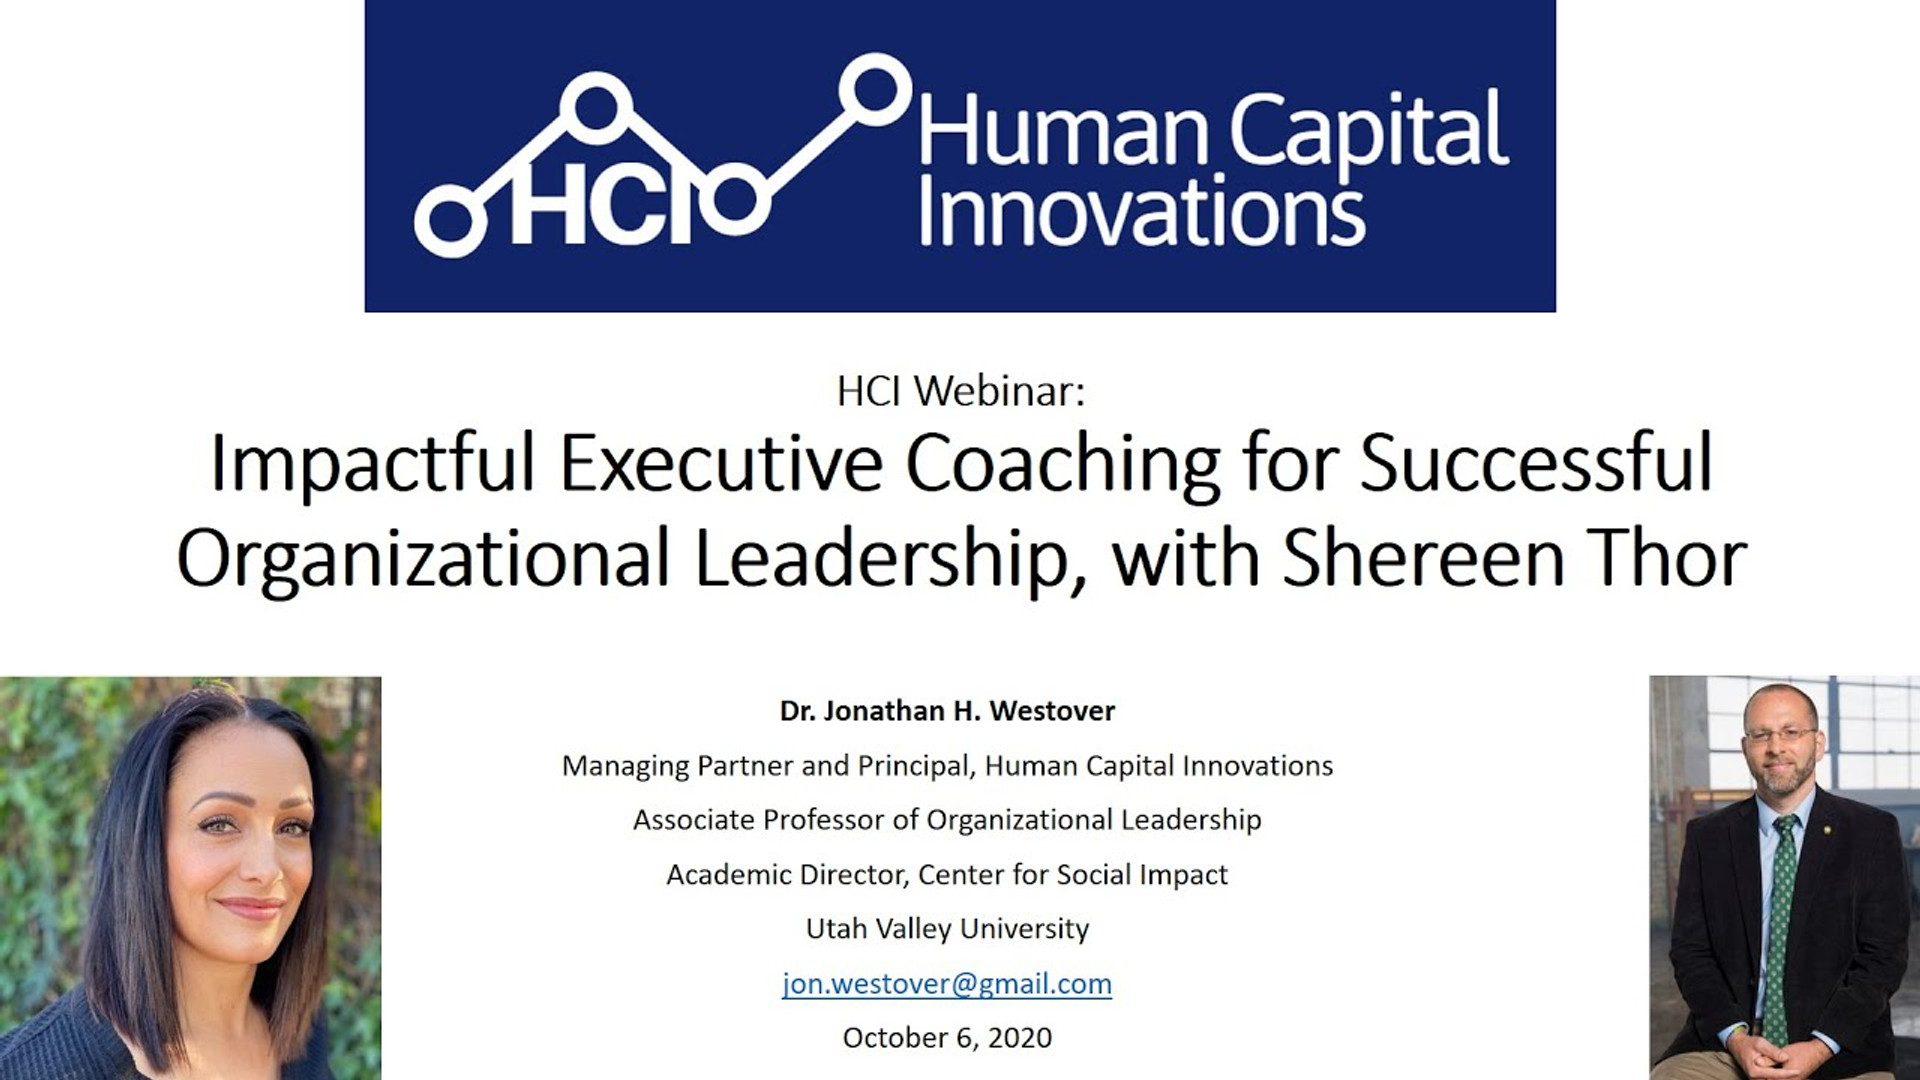 Impactful Executive Coaching for Successful Organizational Leadership